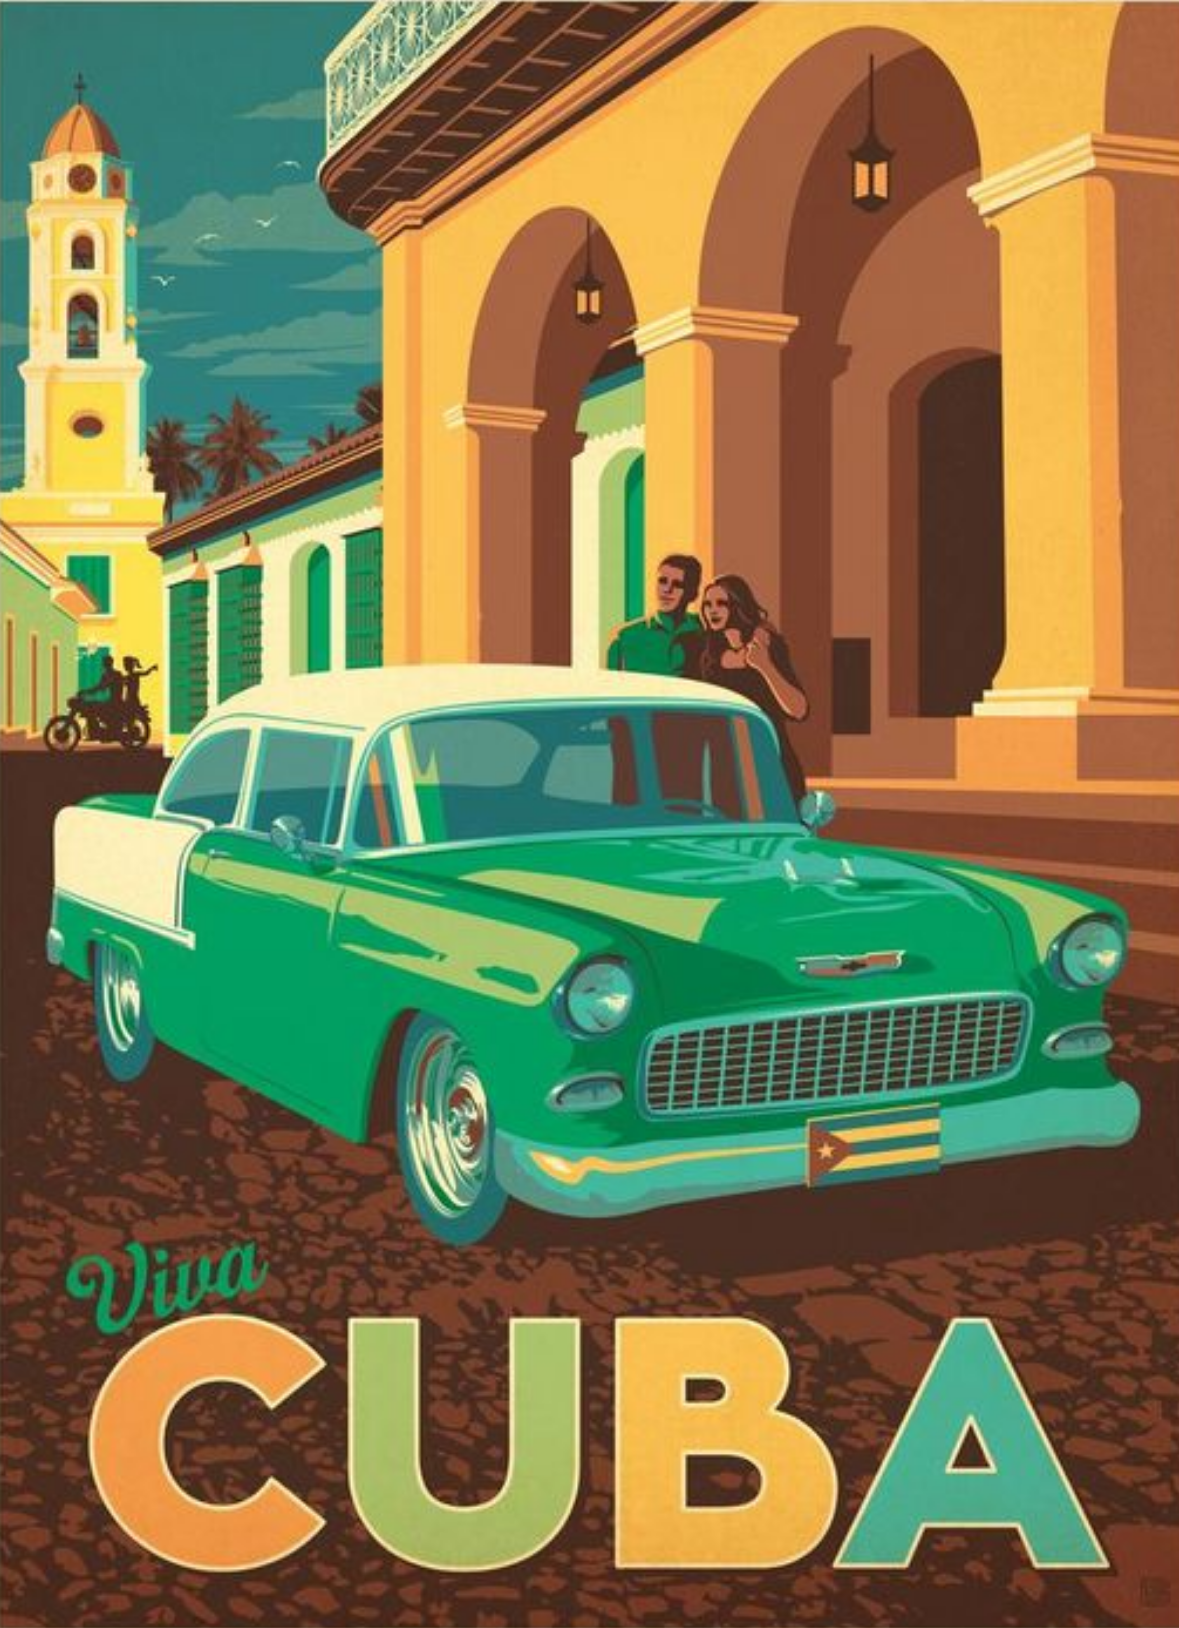 viva cuba anderson design group with images retro travel poster vintage travel posters travel prints pinterest